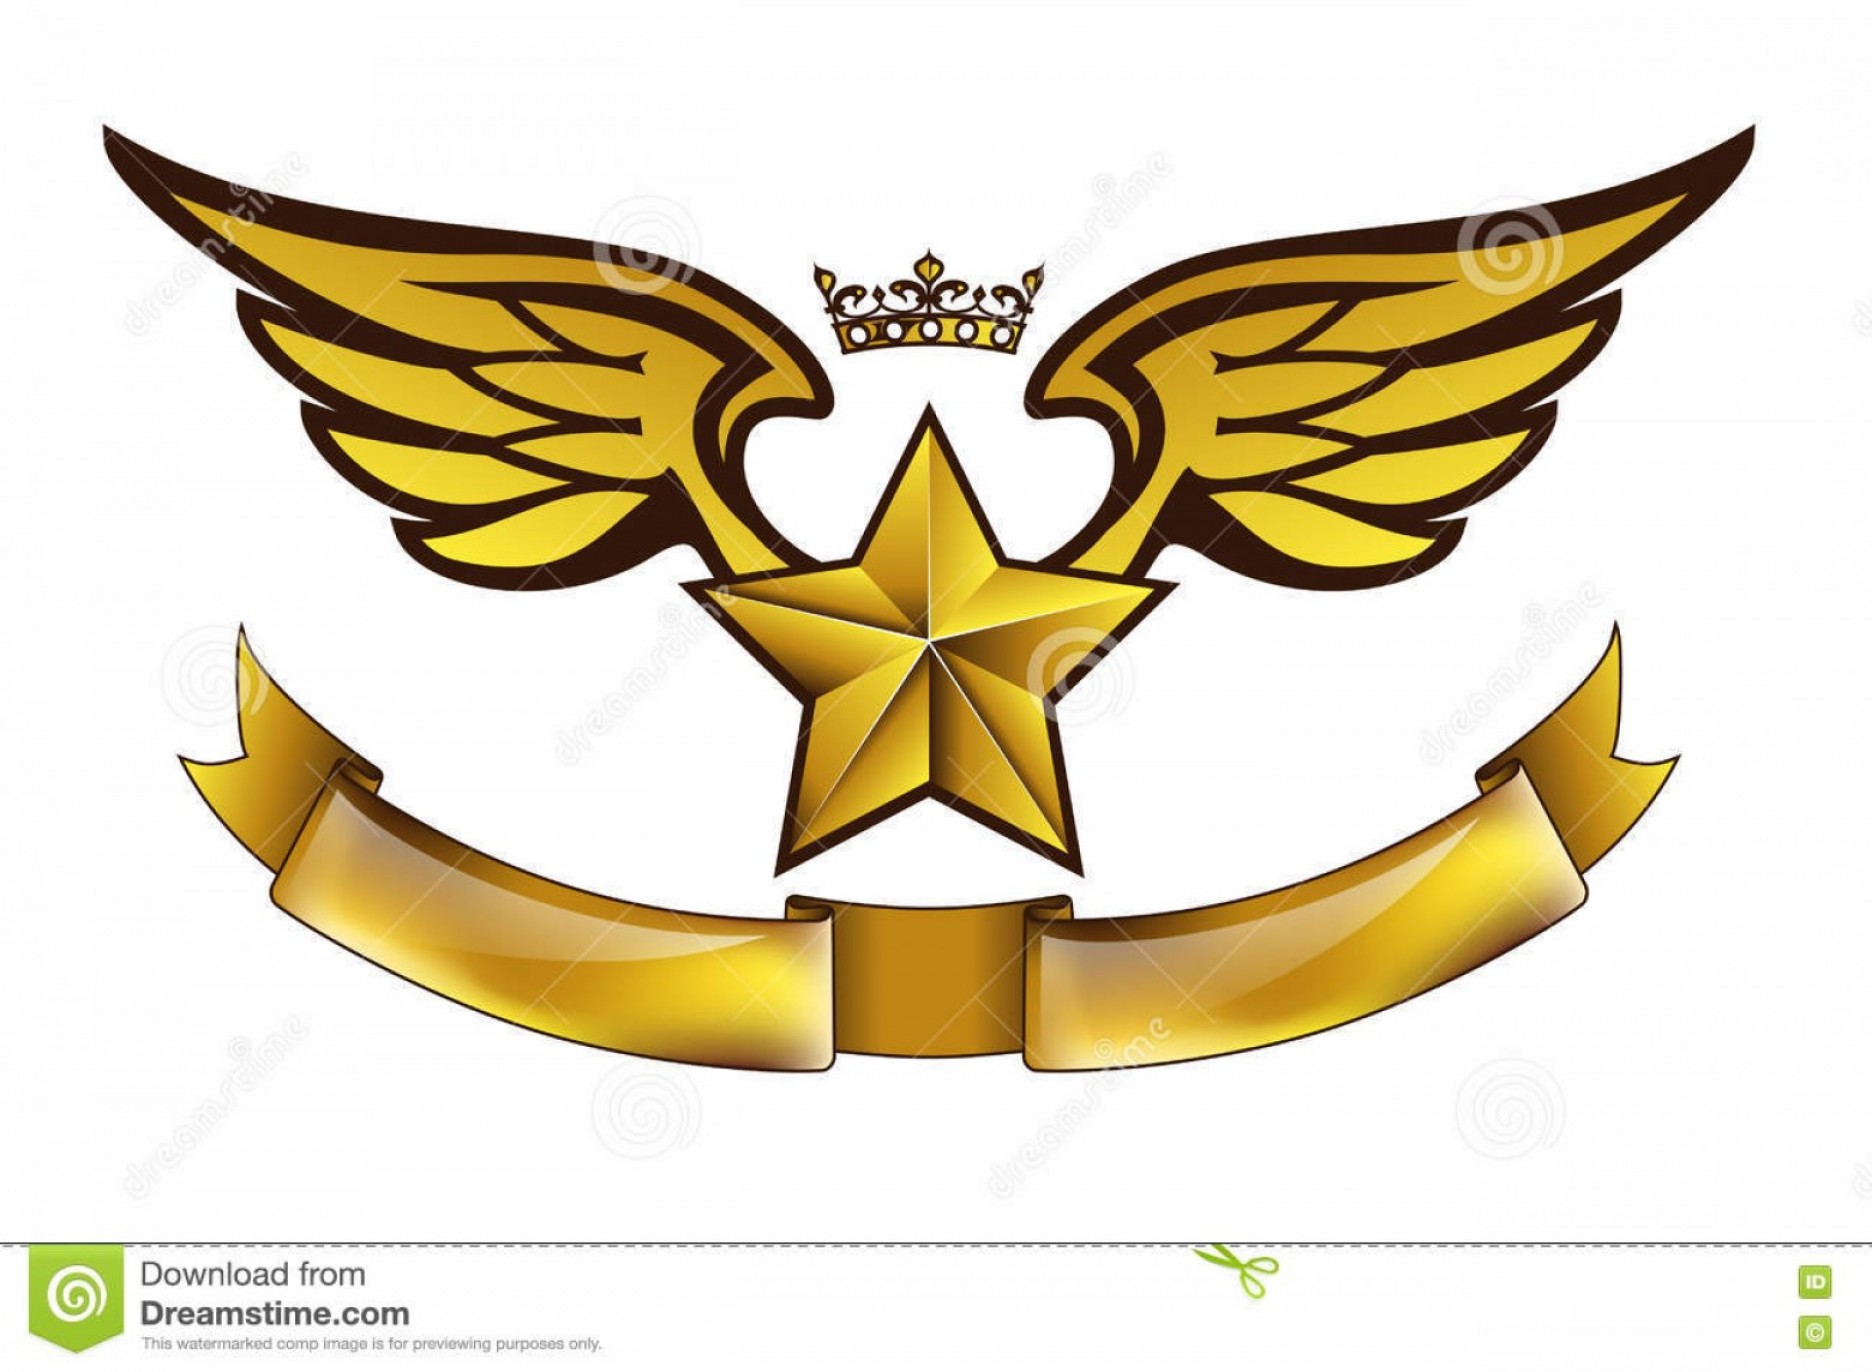 Army Aviator Wings Vector: Stock Illustration Vector Golden Tattoo Logo Star Wings Crown Ribbon Isolated White Background Design Air Force Biker Army Print Image